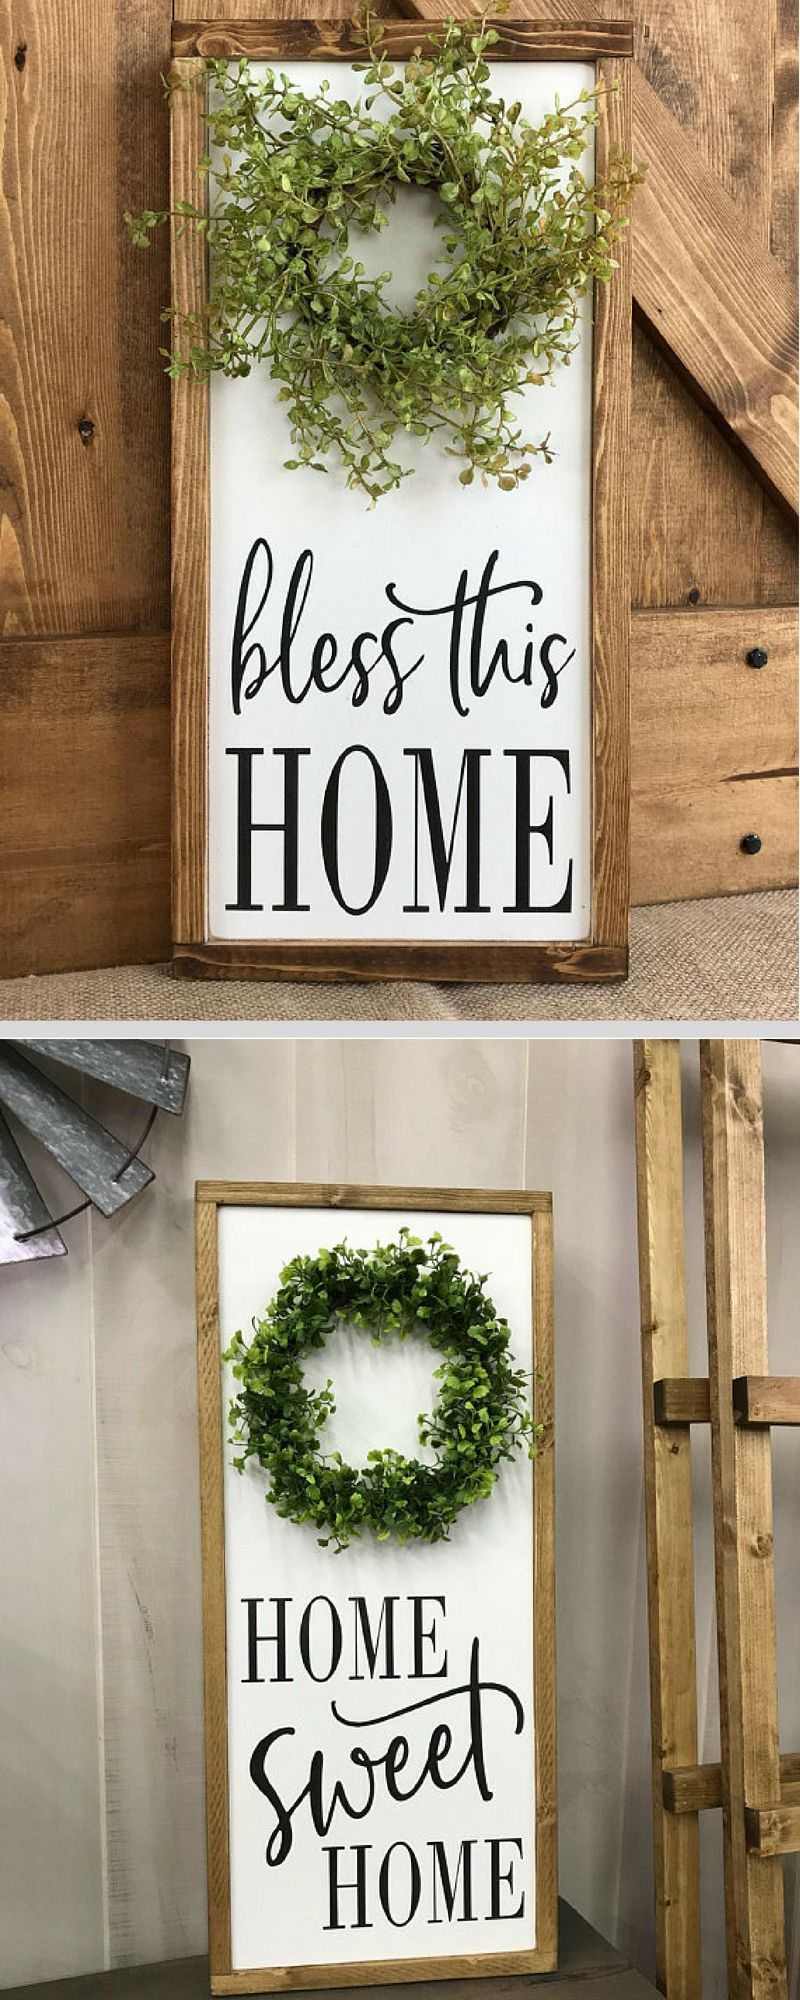 Farmhouse Home Decor Signs Bless This Home Home Sweet Home Rustic